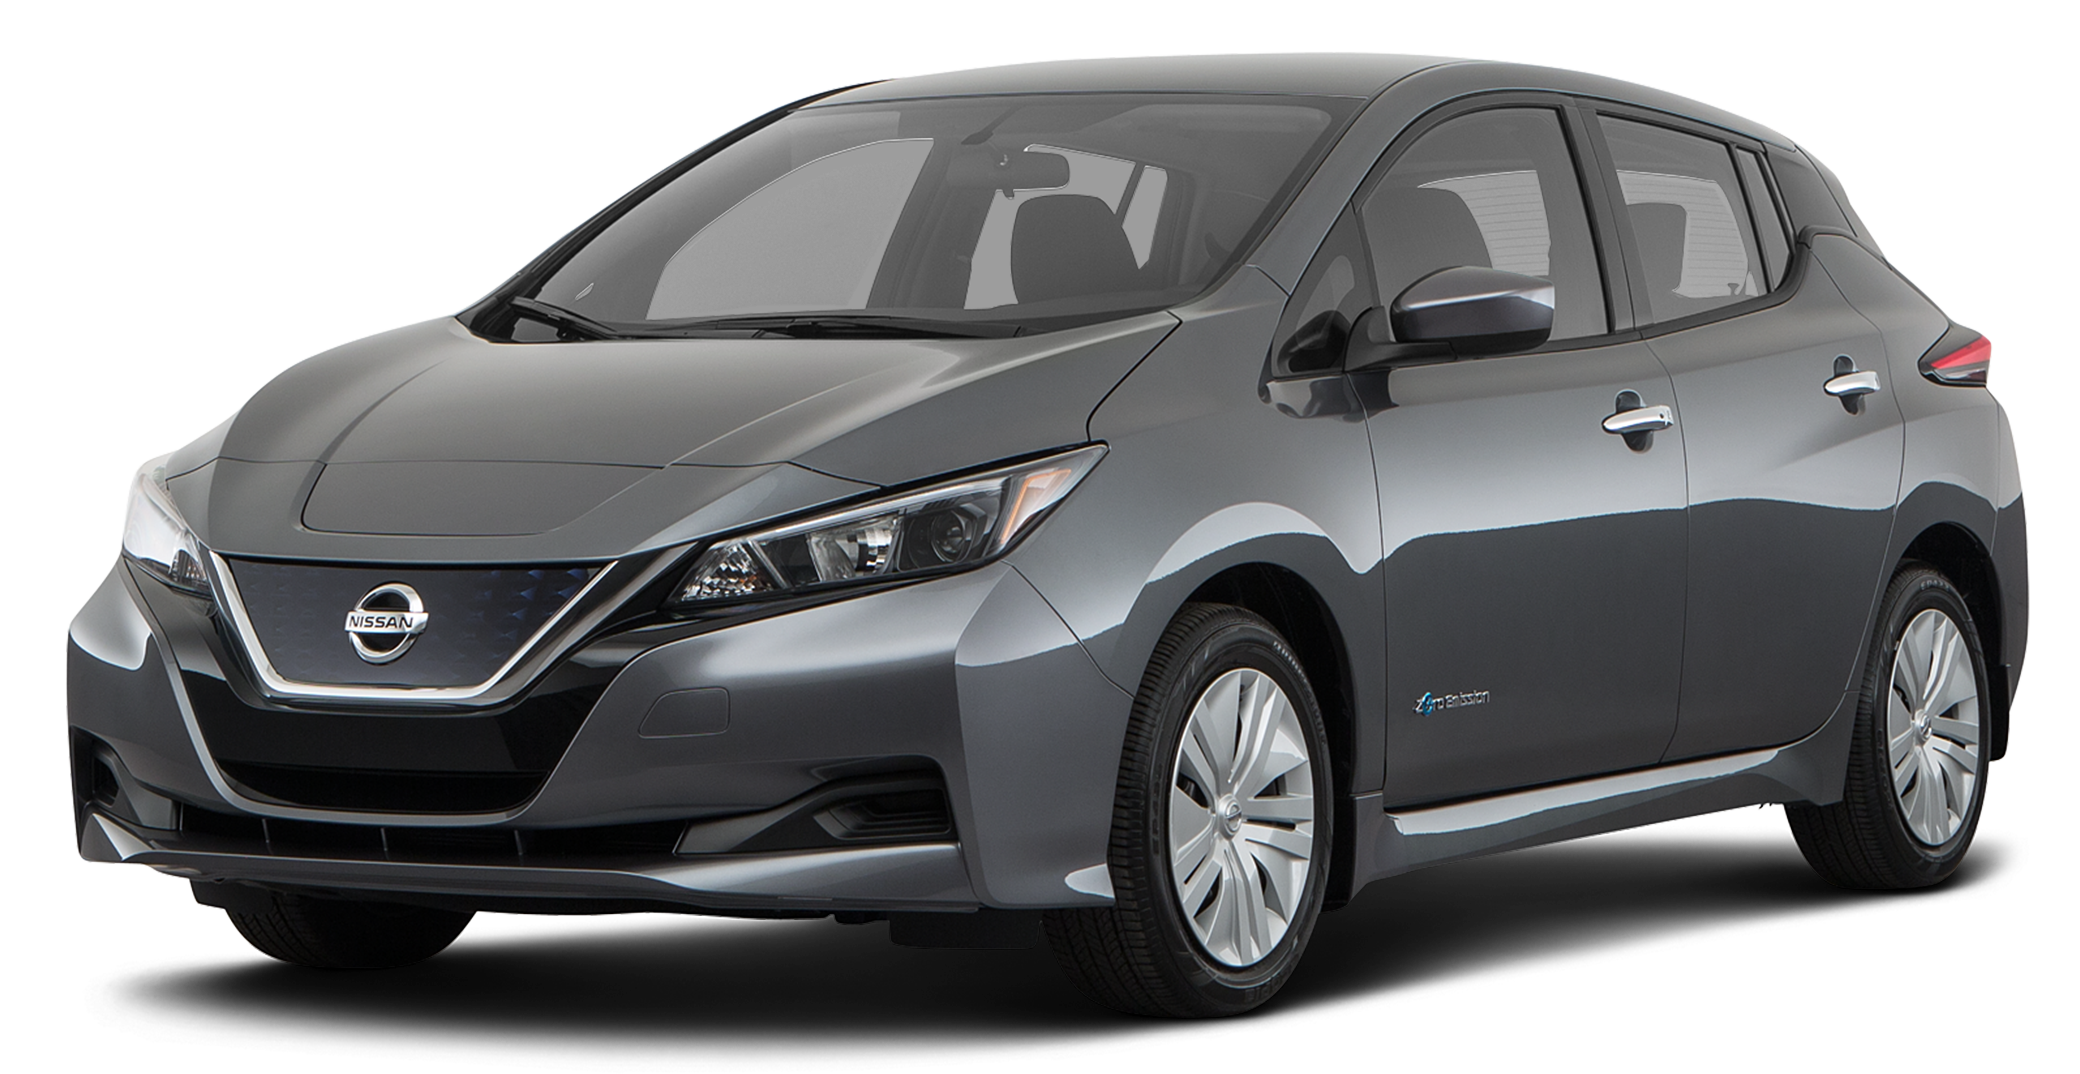 2019 Nissan LEAF Incentives, Specials & Offers in Toronto ON